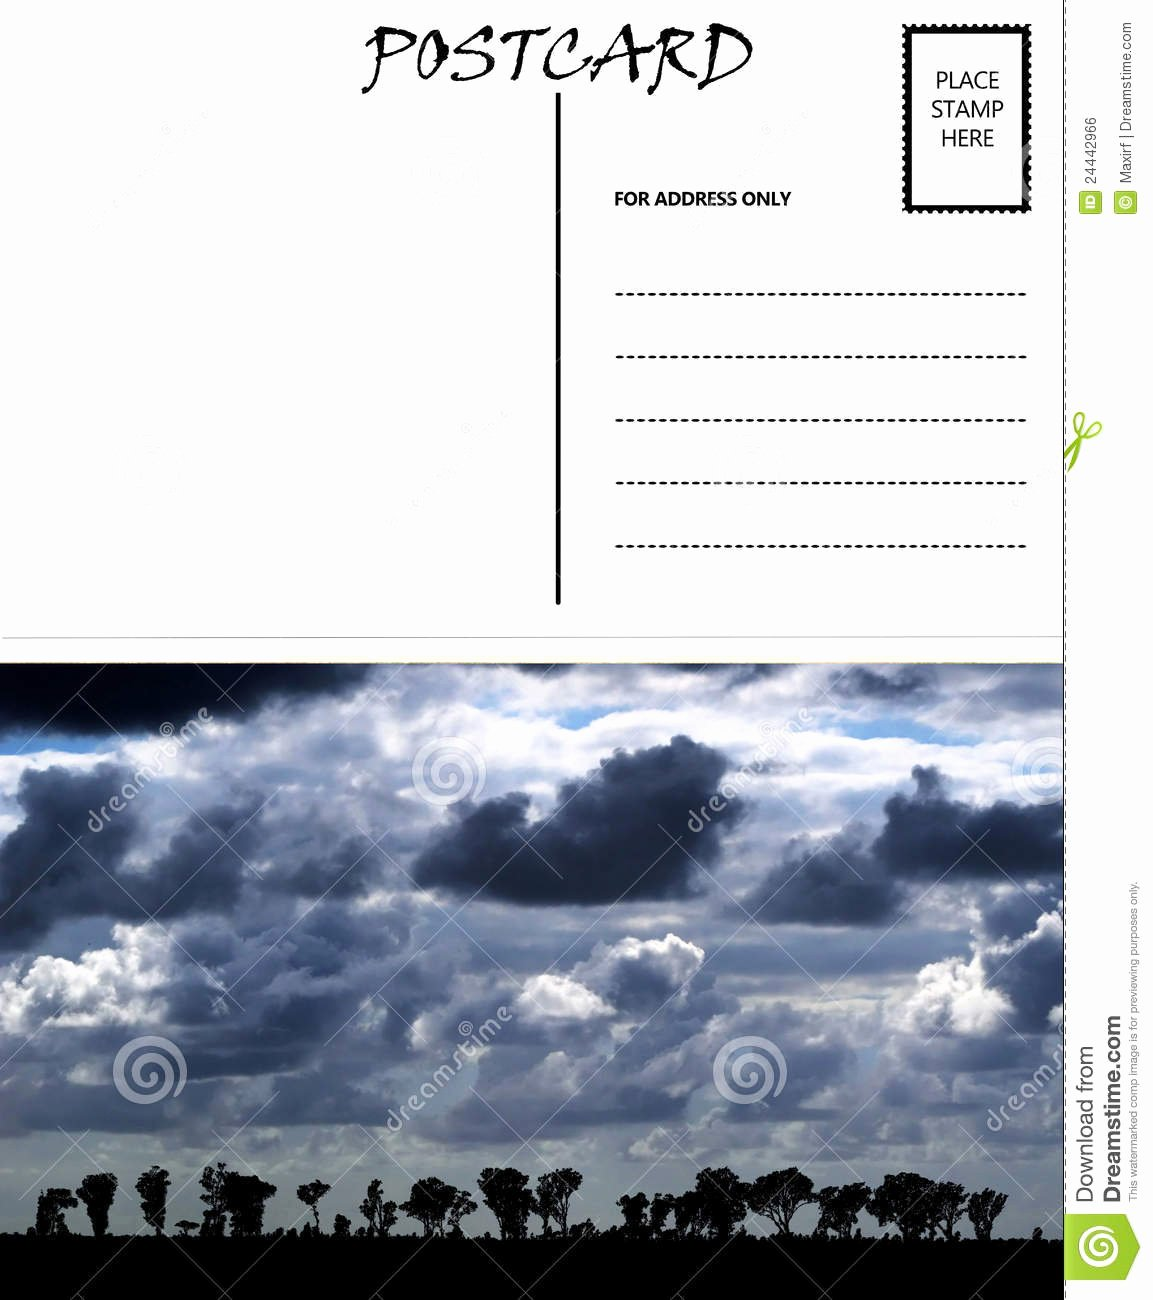 4 Up Postcard Template Awesome Empty Blank Postcard Template Africa Sky Image Stock